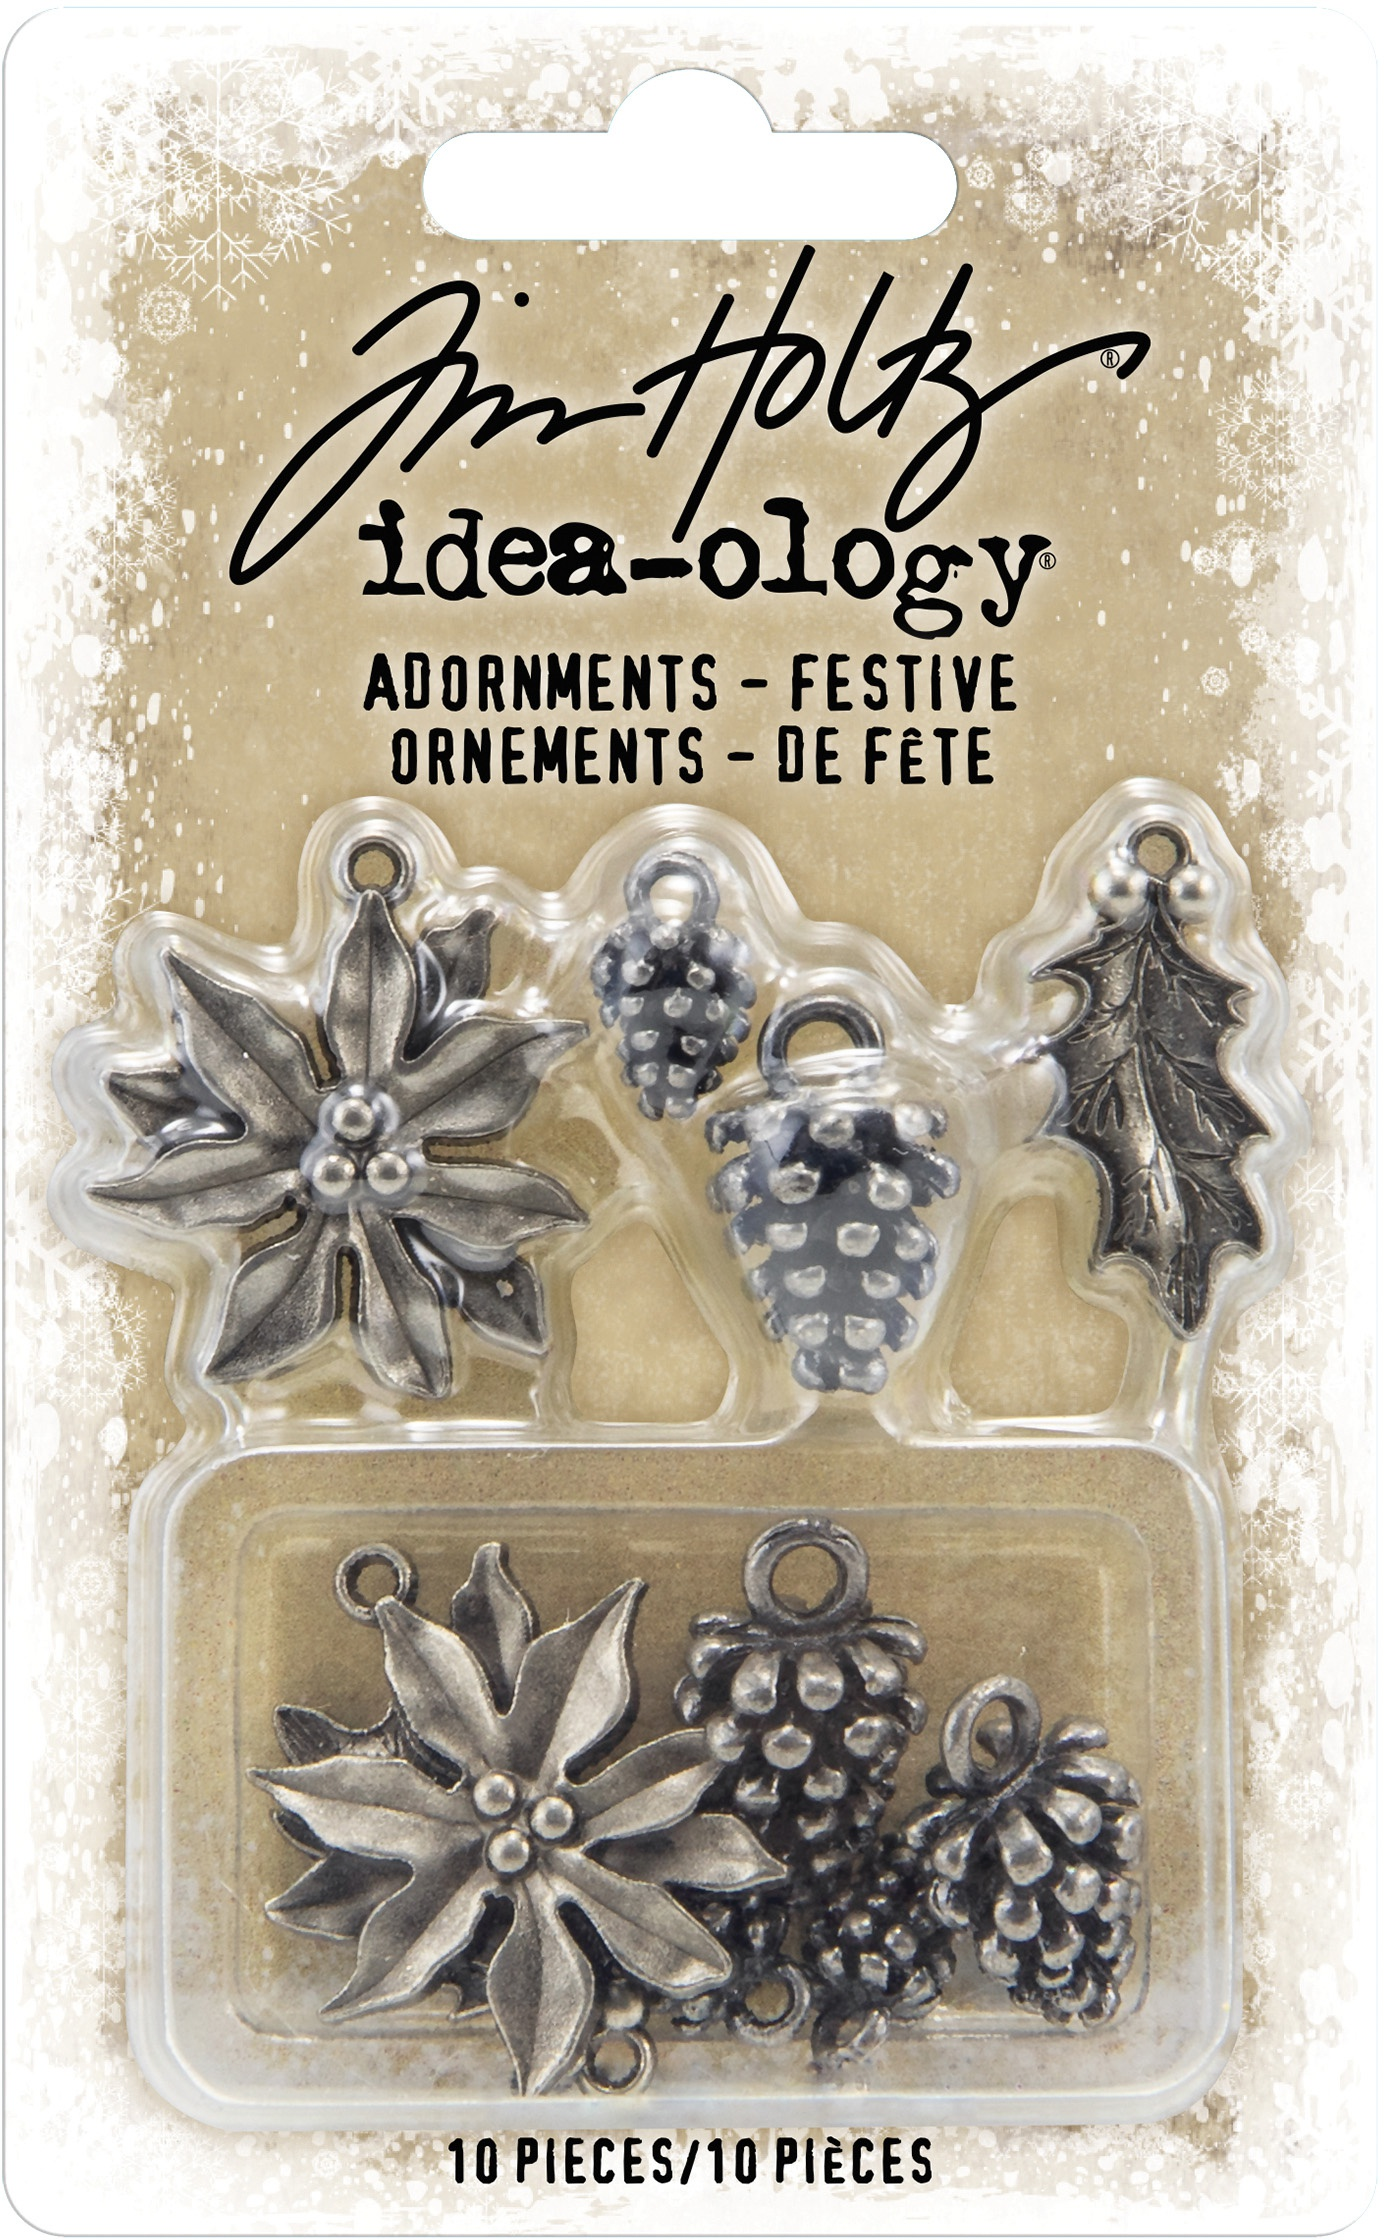 TH Adornments - Festive 2019